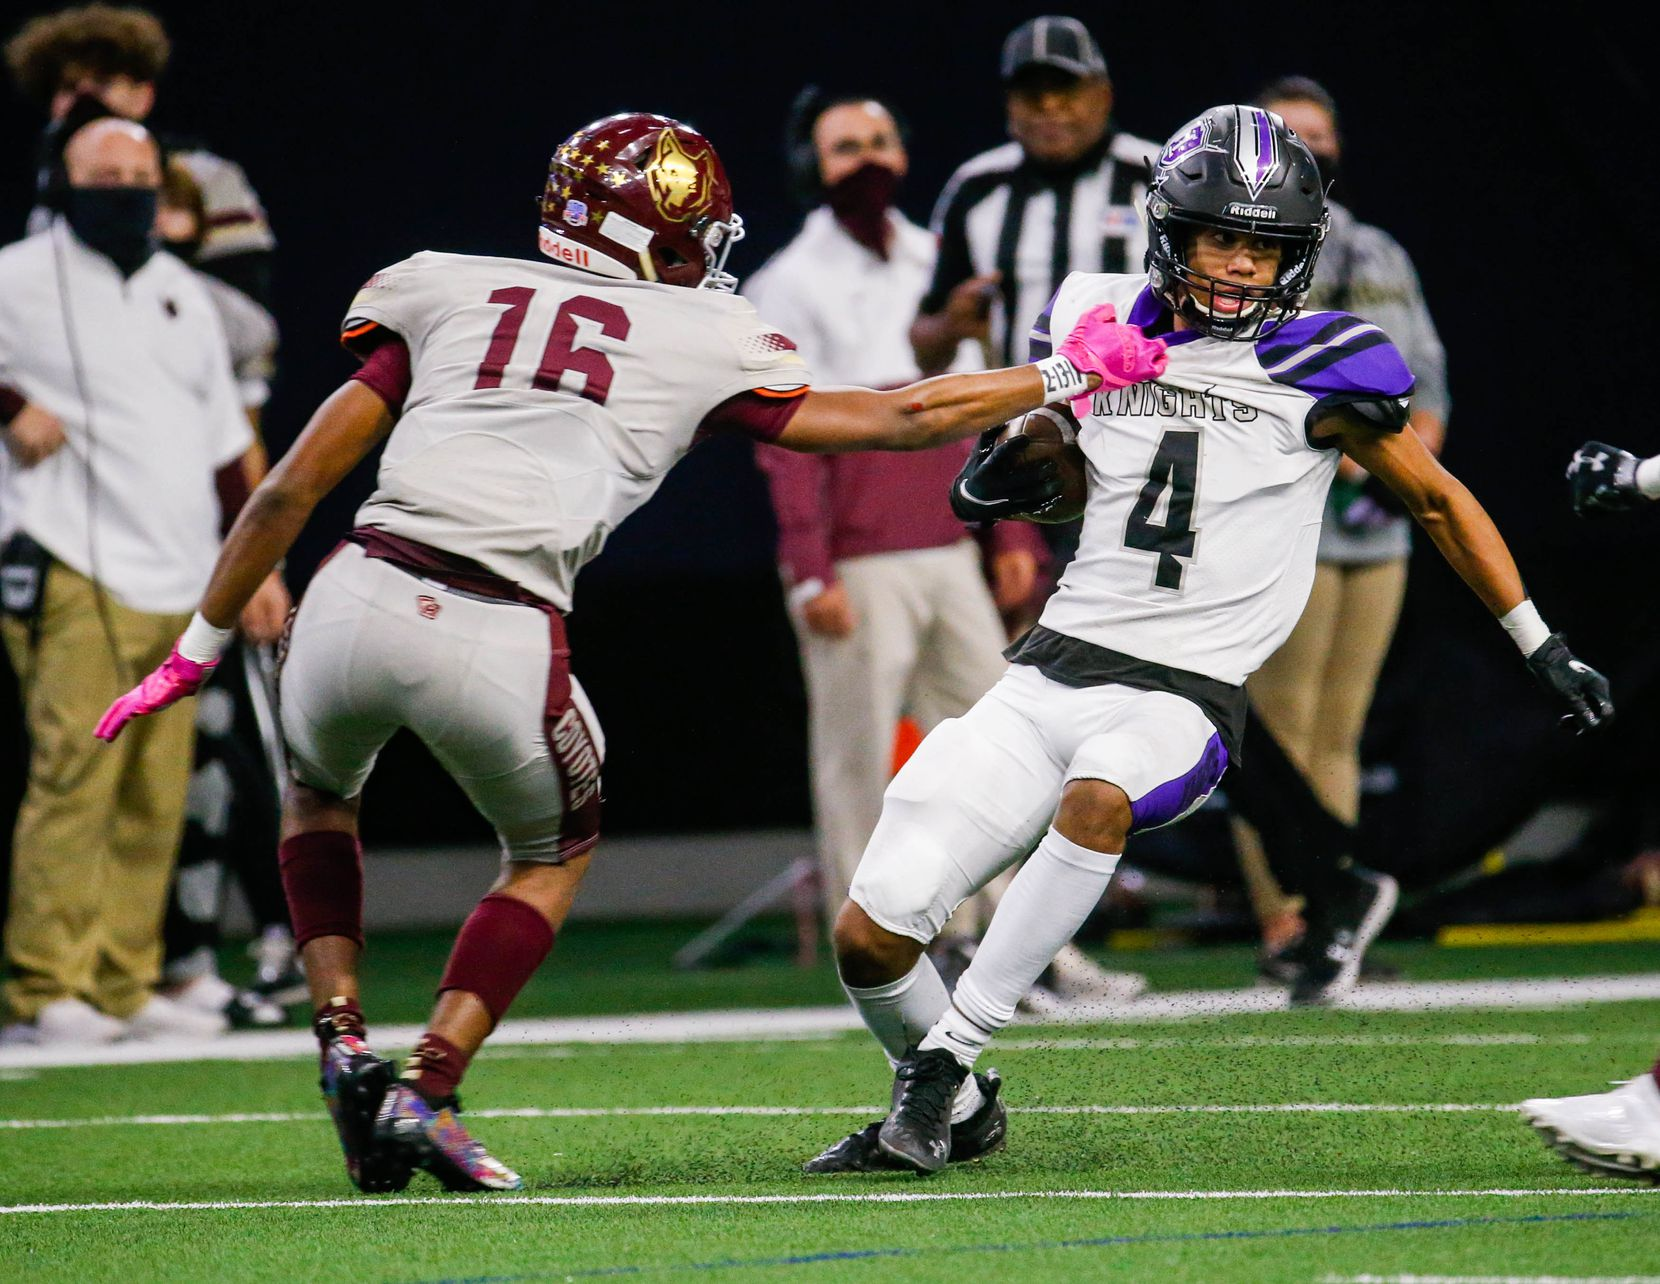 Frisco Independence Jordyn Tyson (4) is grabbed by Frisco Heritage's Lavar Young (26) during the second half of a game at the Ford Center at the Star in Frisco on Thursday, Dec. 3, 2020. (Juan Figueroa/ The Dallas Morning News)